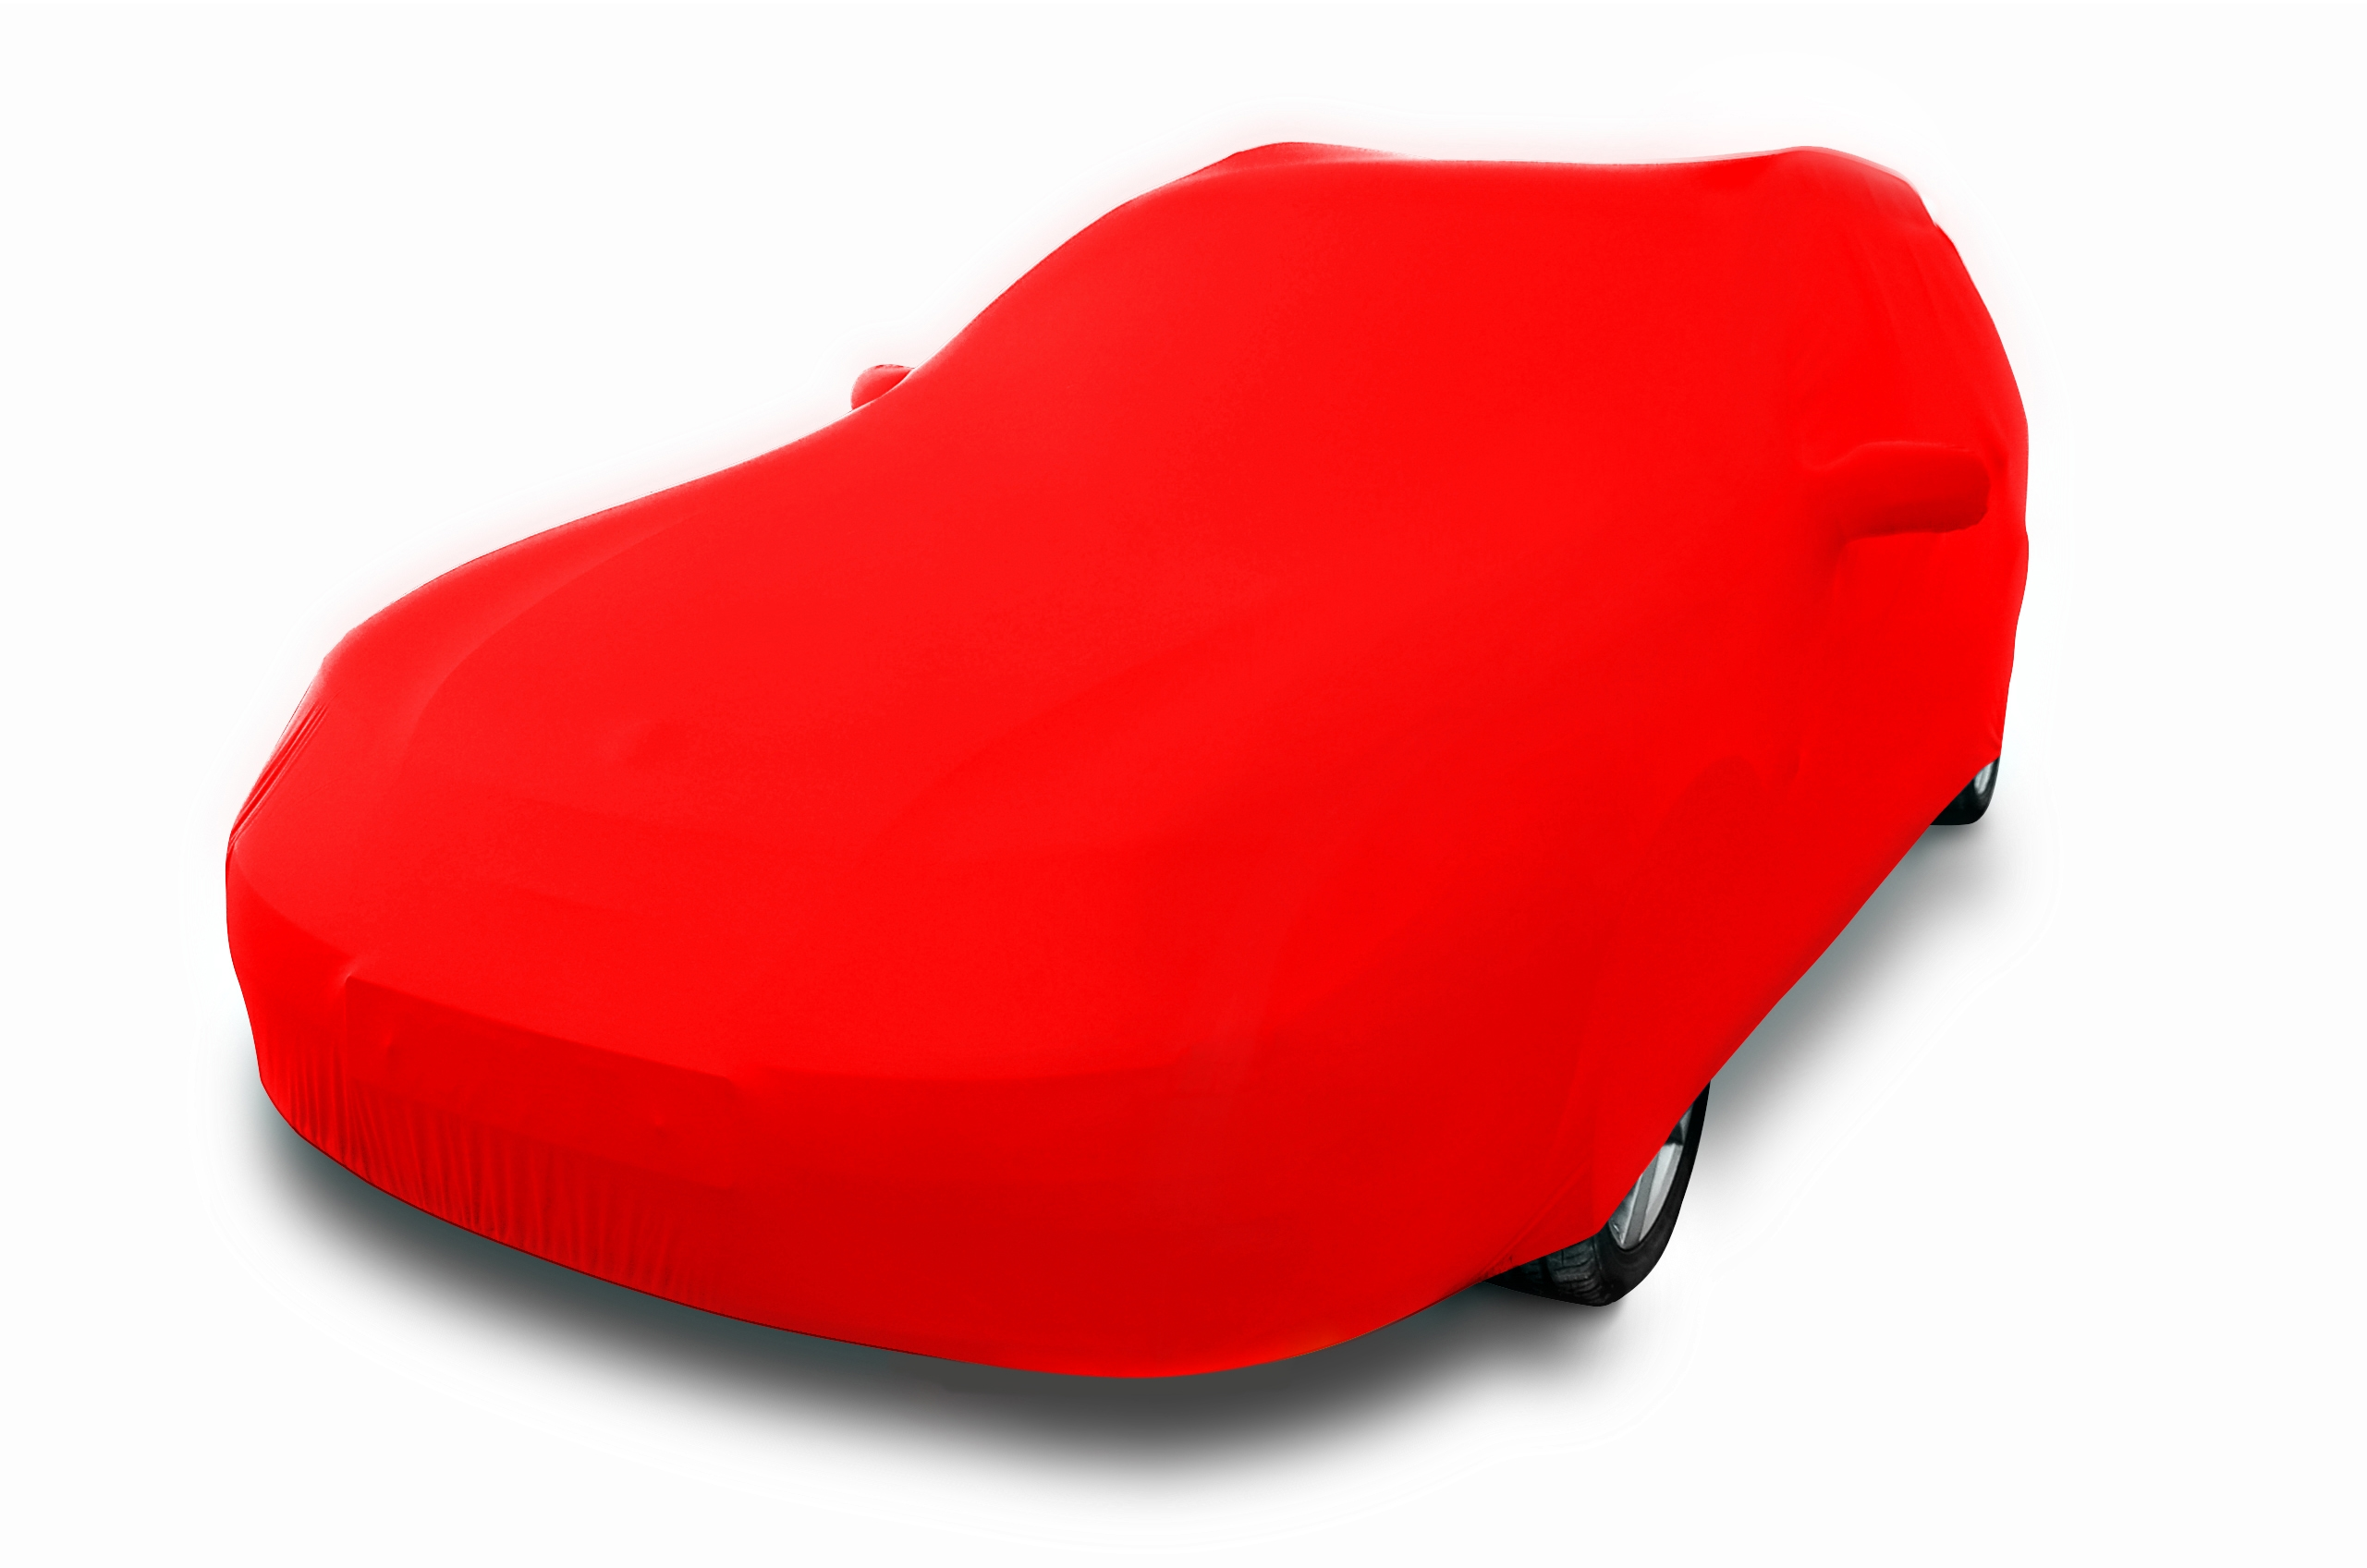 housse voiture rouge